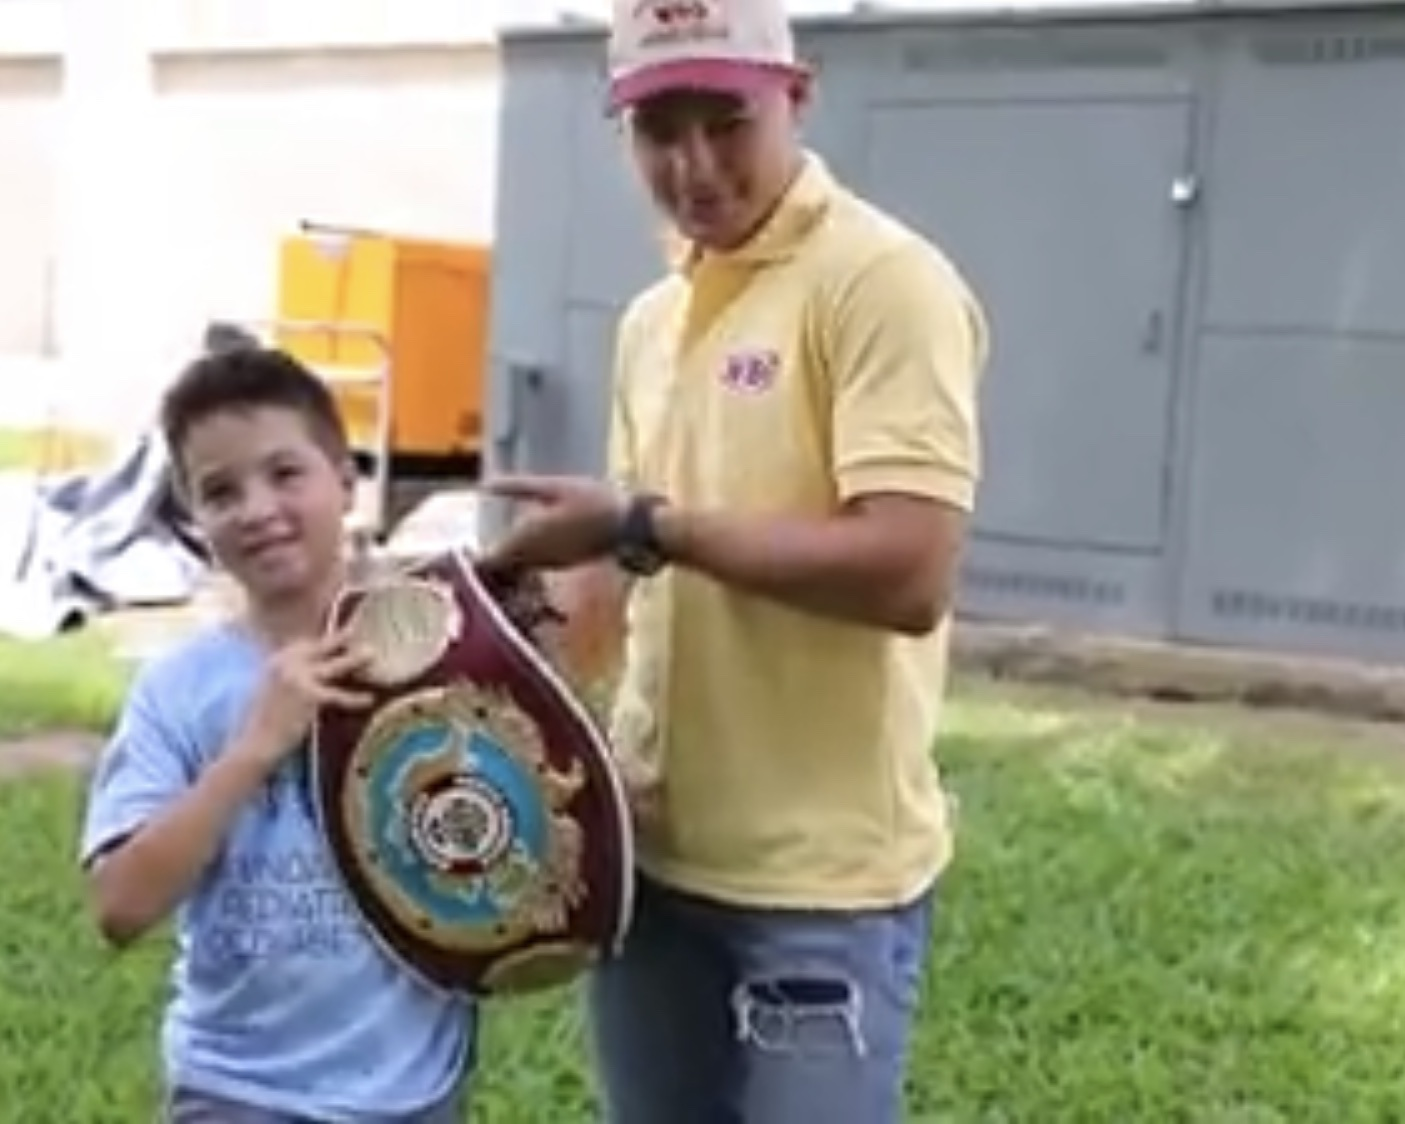 Jeyvier Cintron with the Caribbean Championship belt, visits Summer Camp